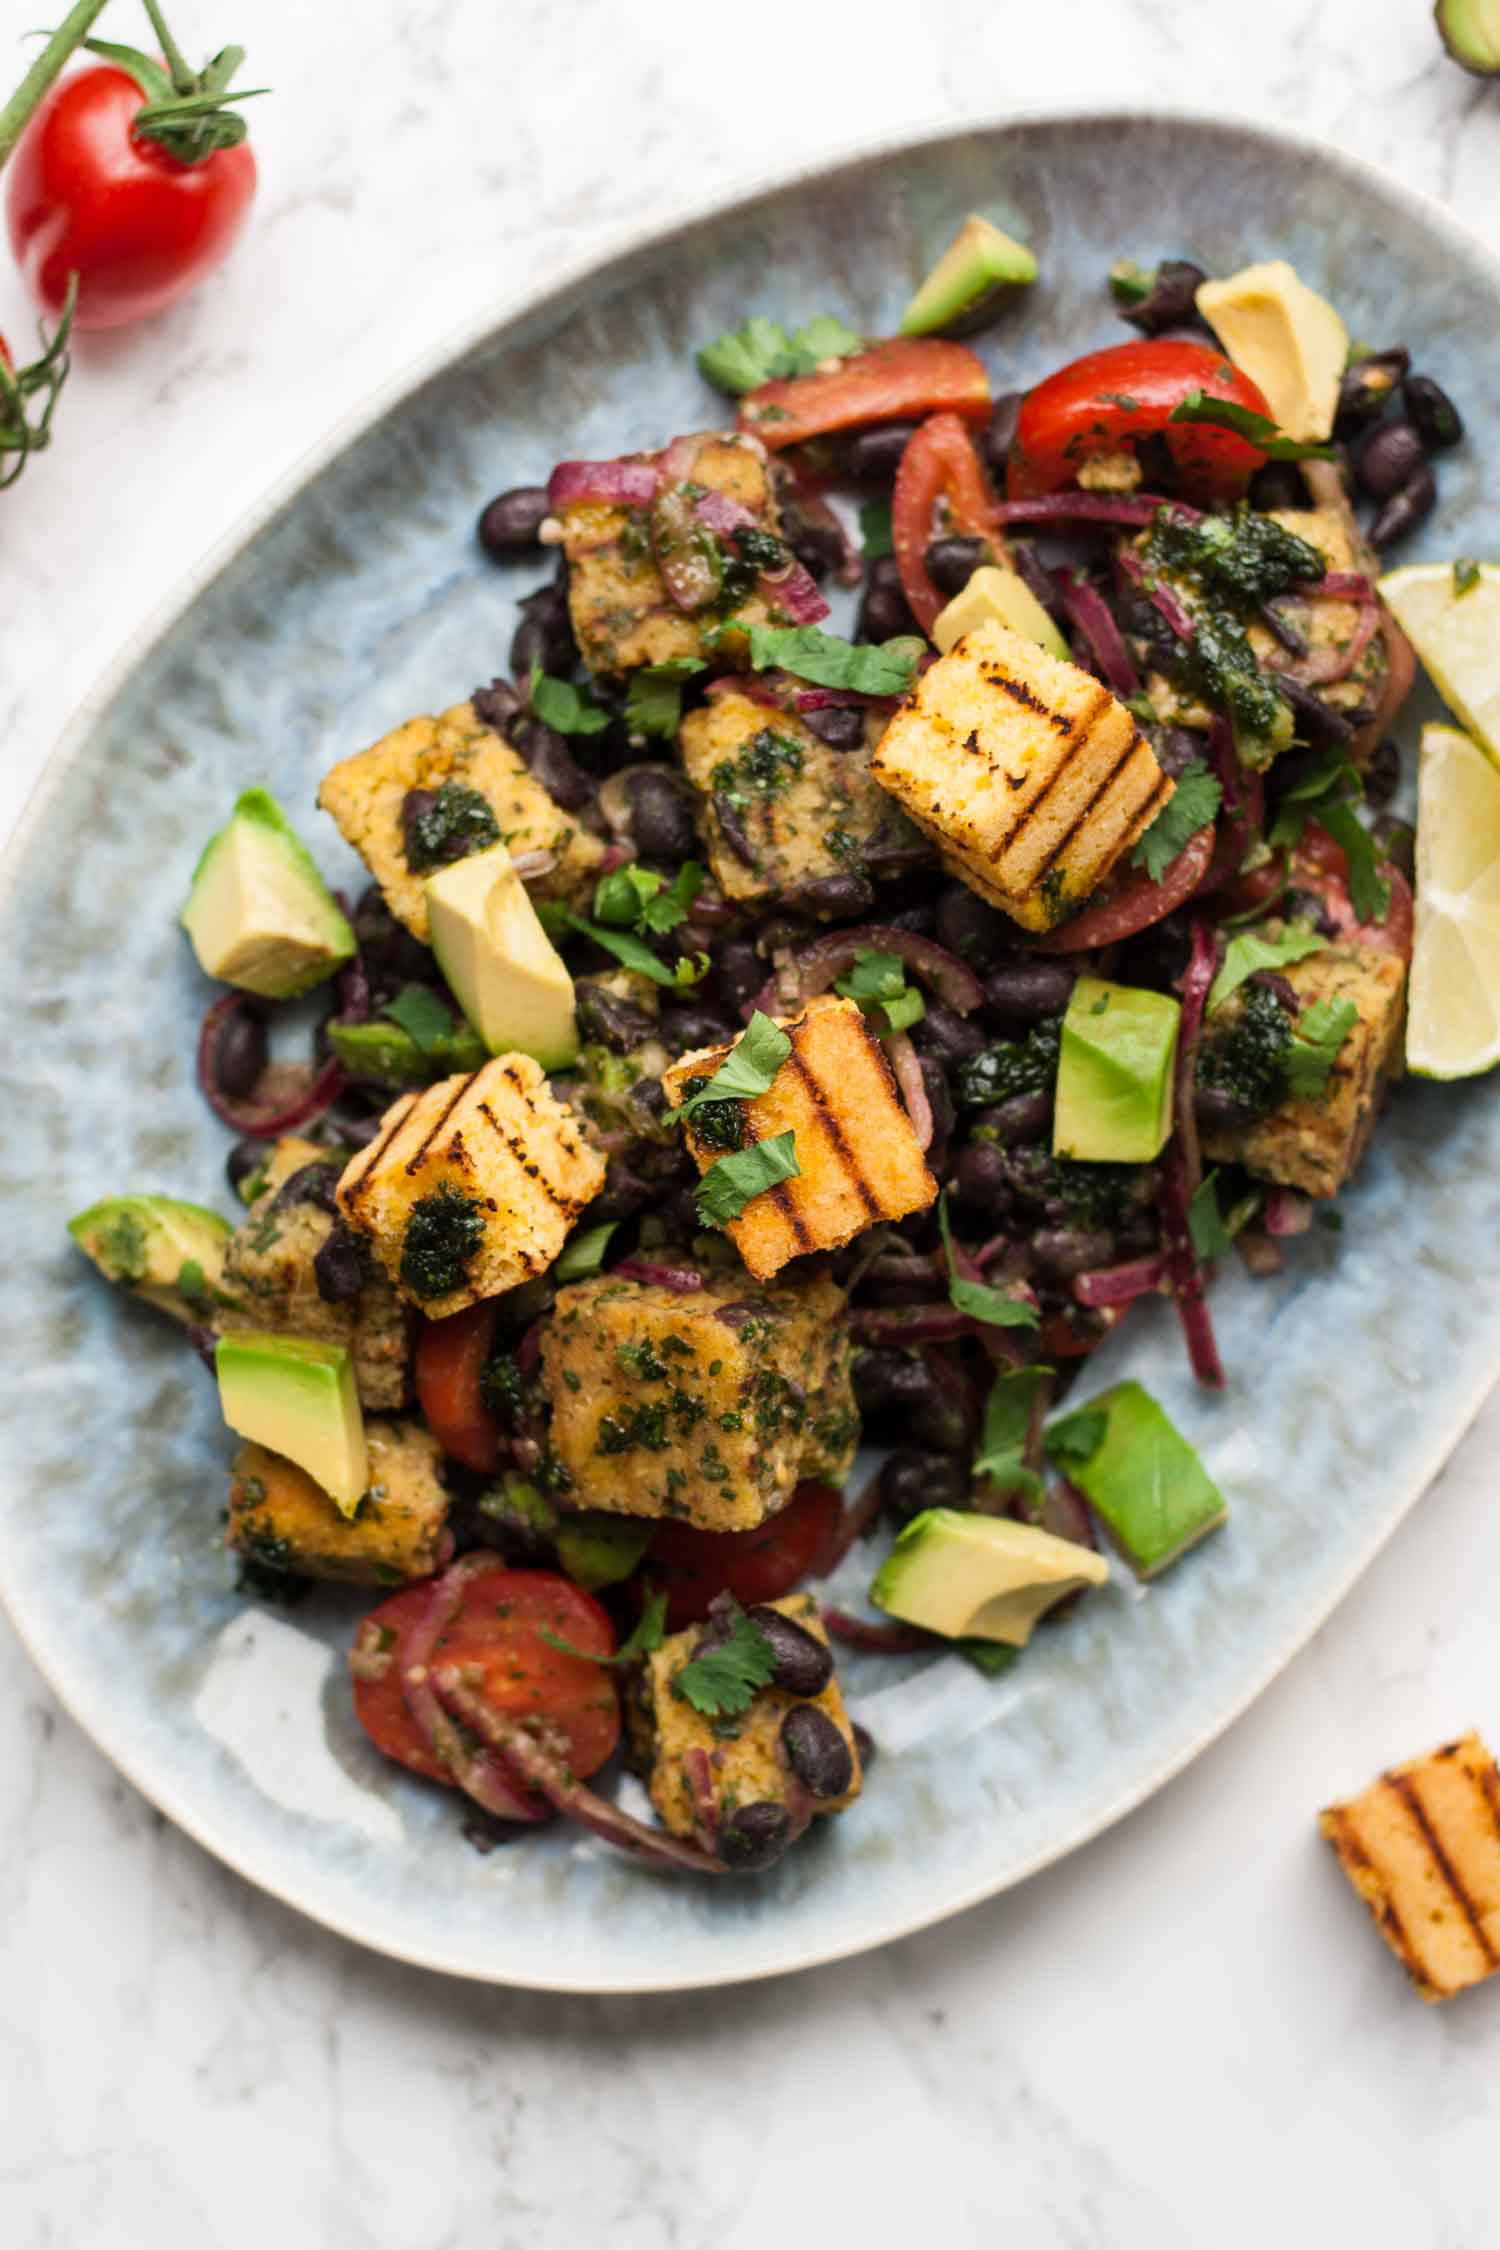 Mexican Panzanella Salad - this flavourful twist on the classic Italian bread salad is filled with black beans, avocado and cornbread and dressed with cilantro oil! | eatloveeats.com